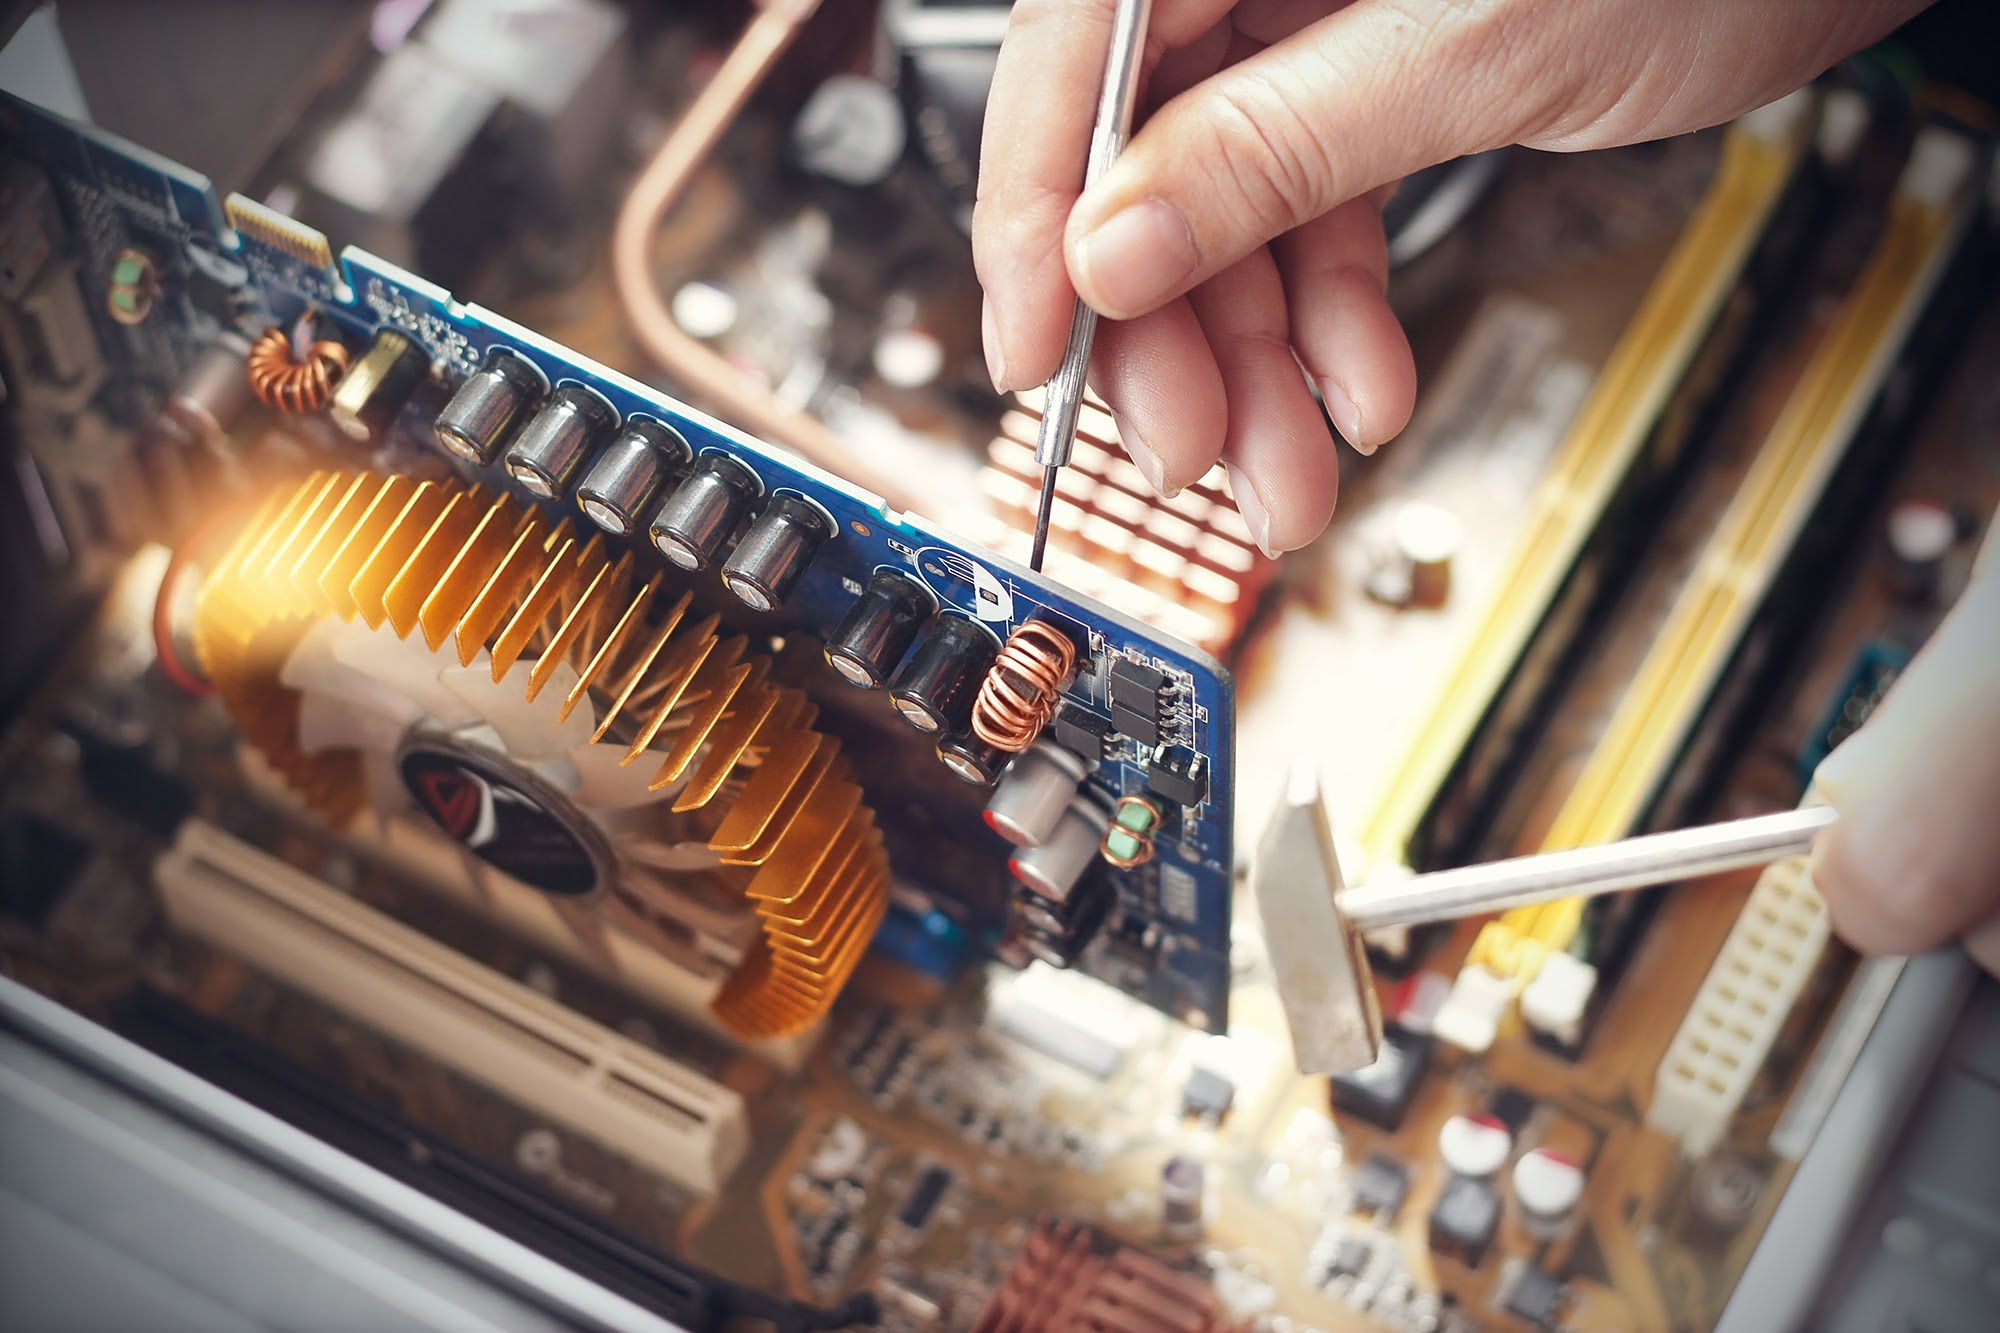 04a5600465f 3 Tips to Hire The very best Computer Repair Company - Welcome to ...